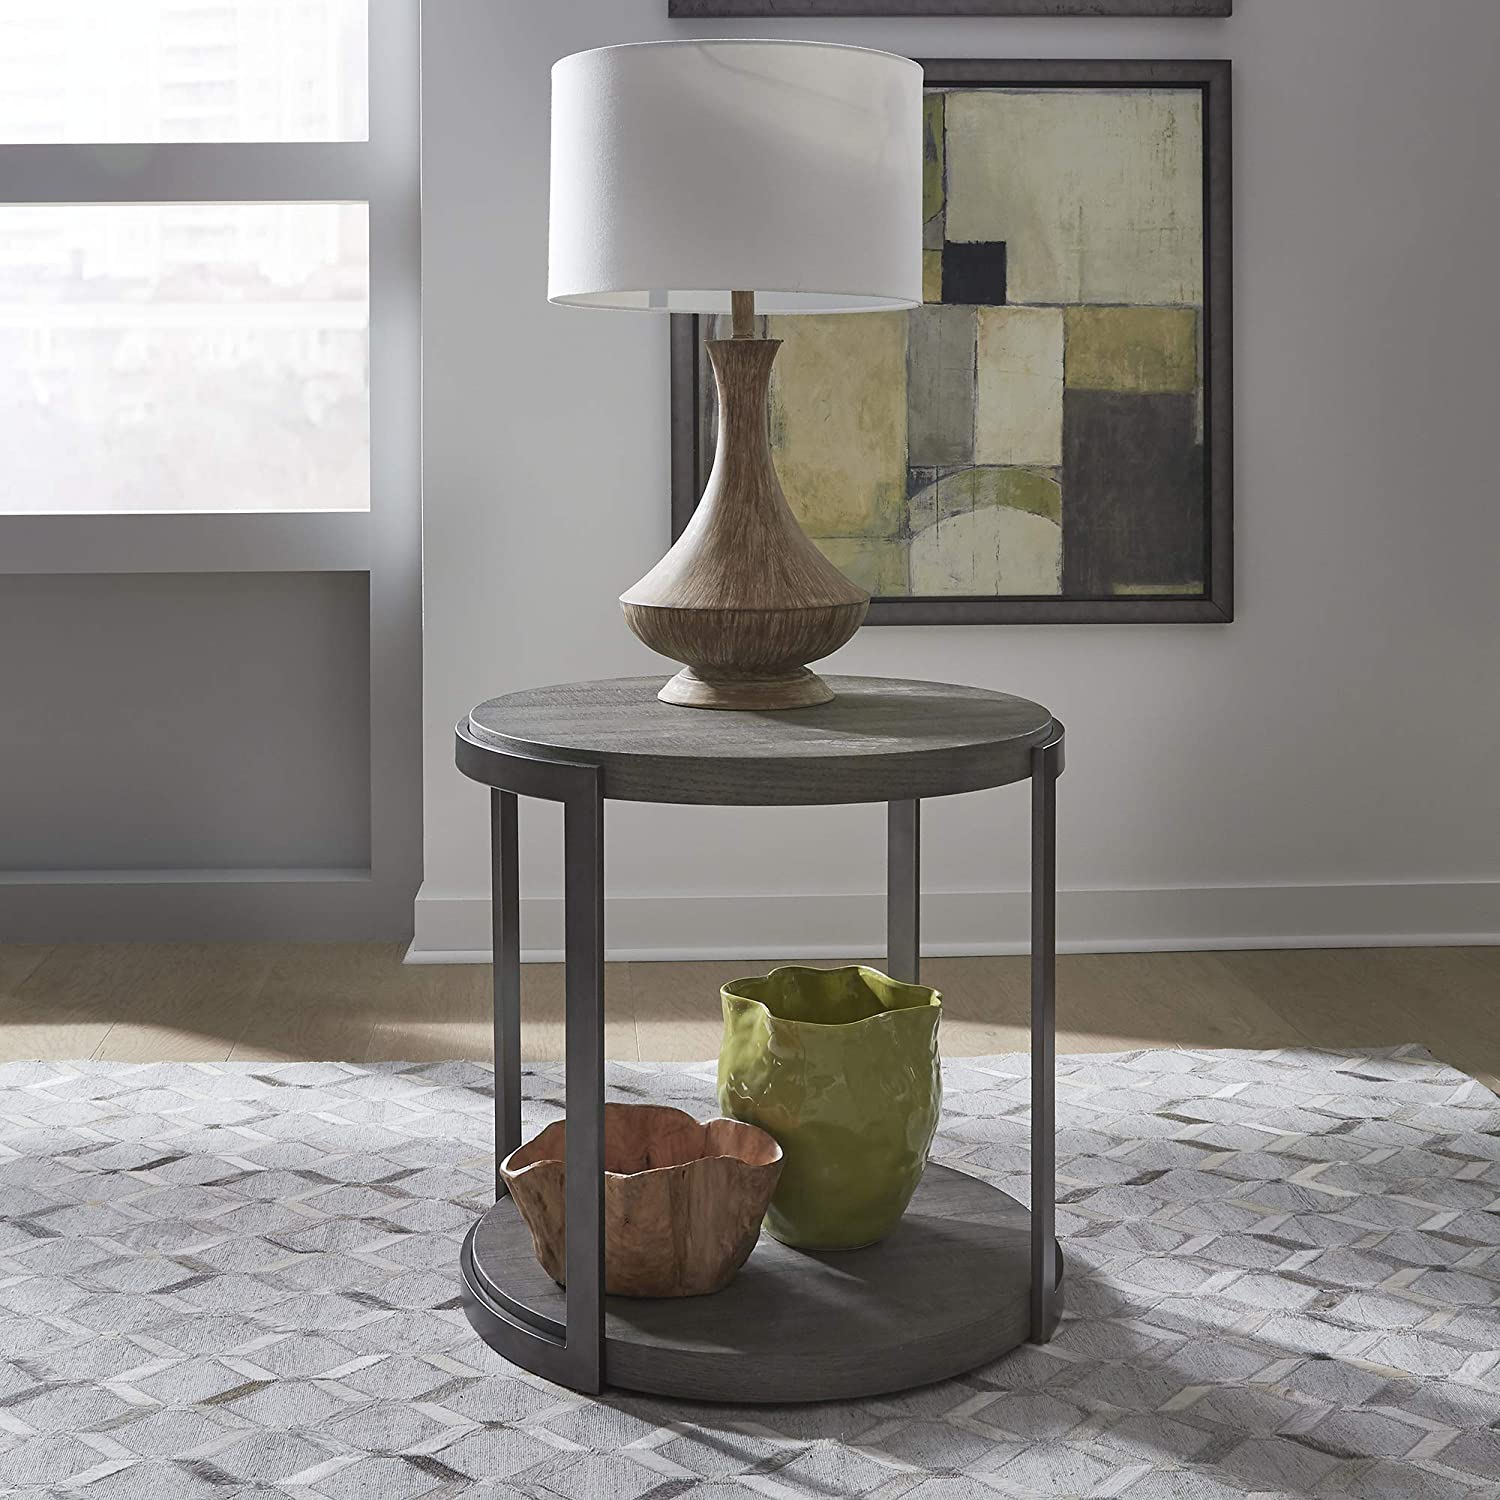 Liberty Furniture Industries 960-OT1020 Modern View Round End Table, W25 x D24 x H24, Gray